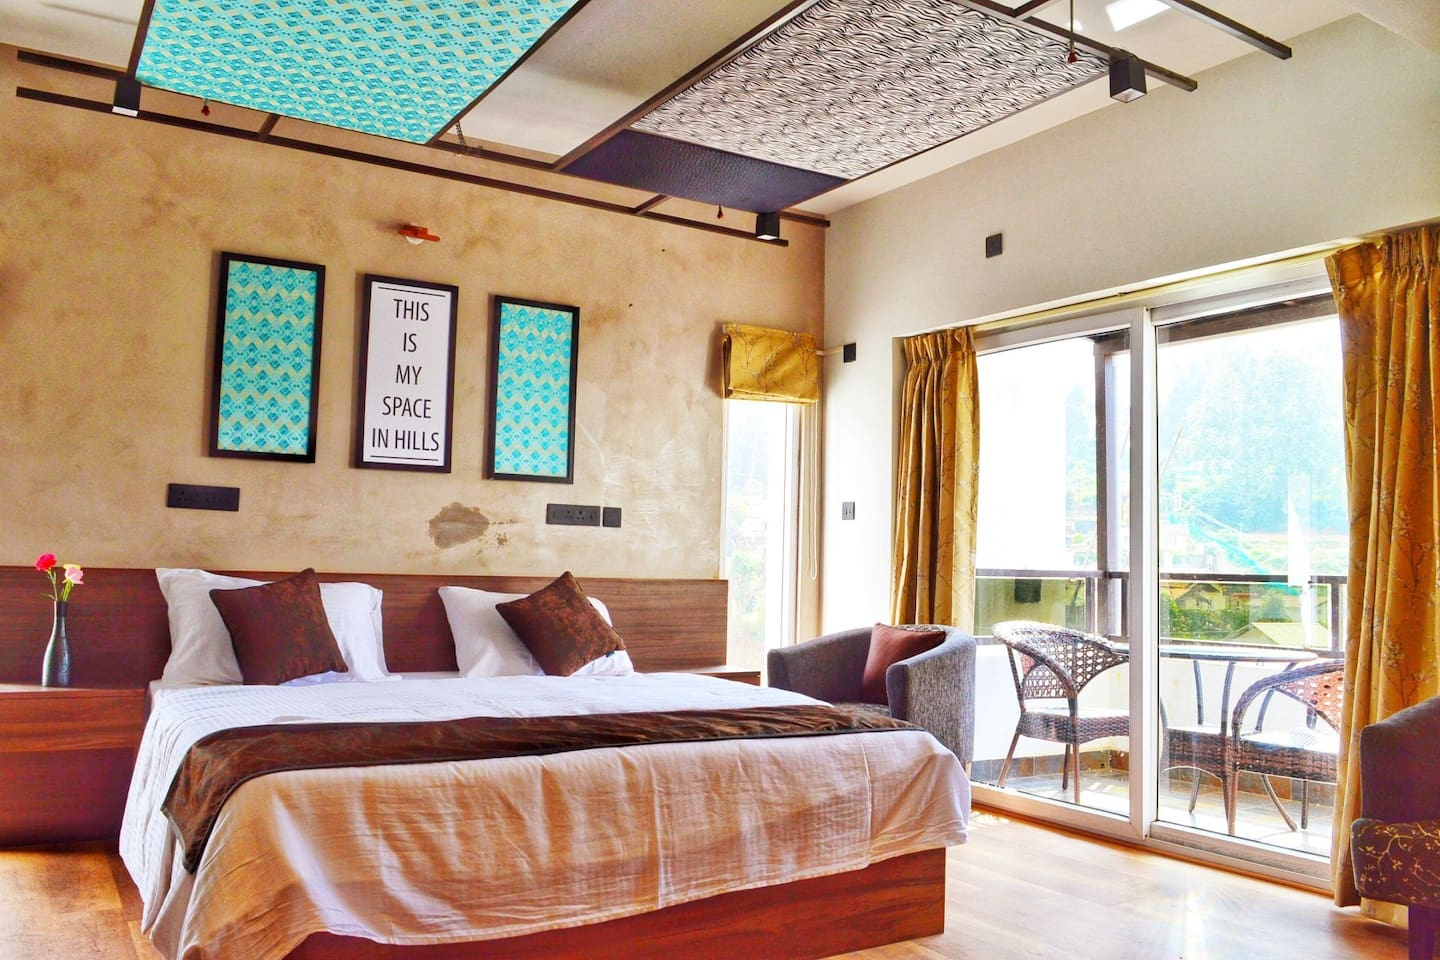 Parquet Flooring & Balcony Sunlight keeps your room in a warm temperature!!